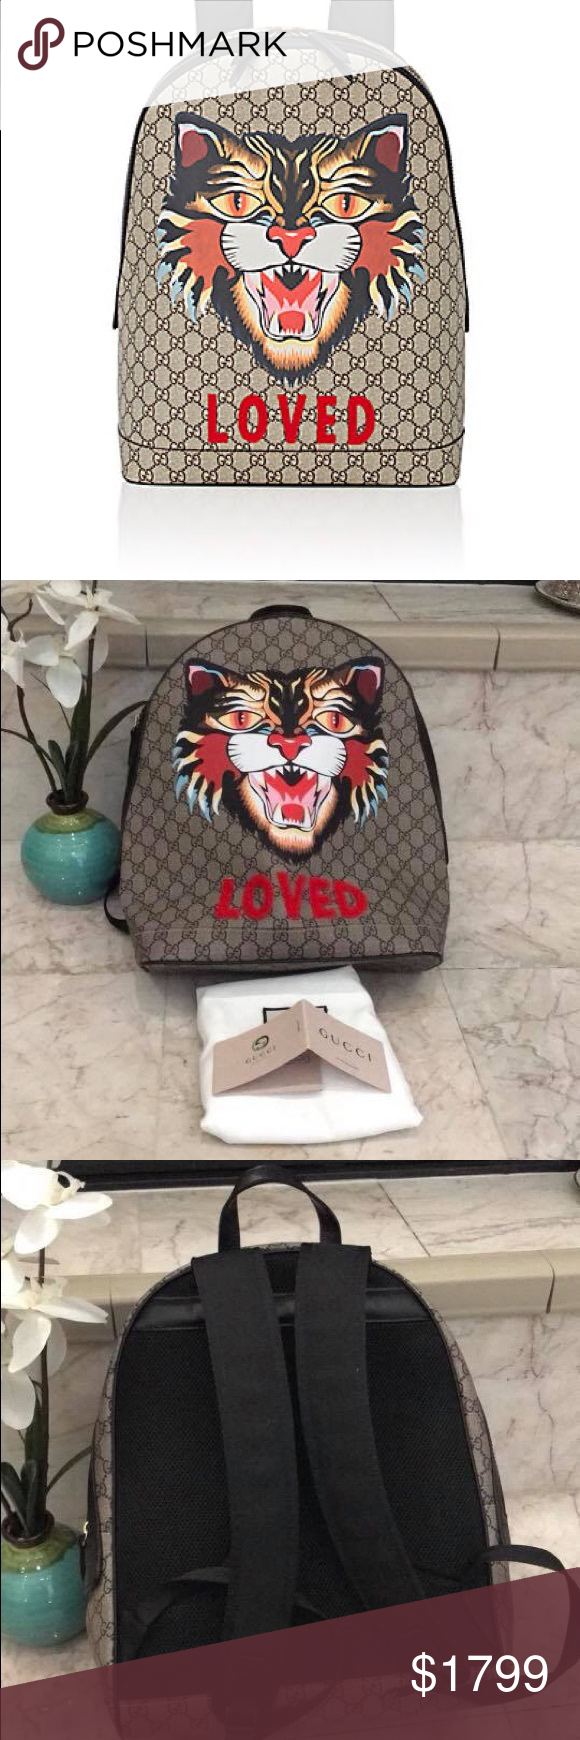 Gucci Cat-Print GG Supreme Backpack Crafted of beige and brown GG Supreme  logo- 8c0fc9bb7e3b